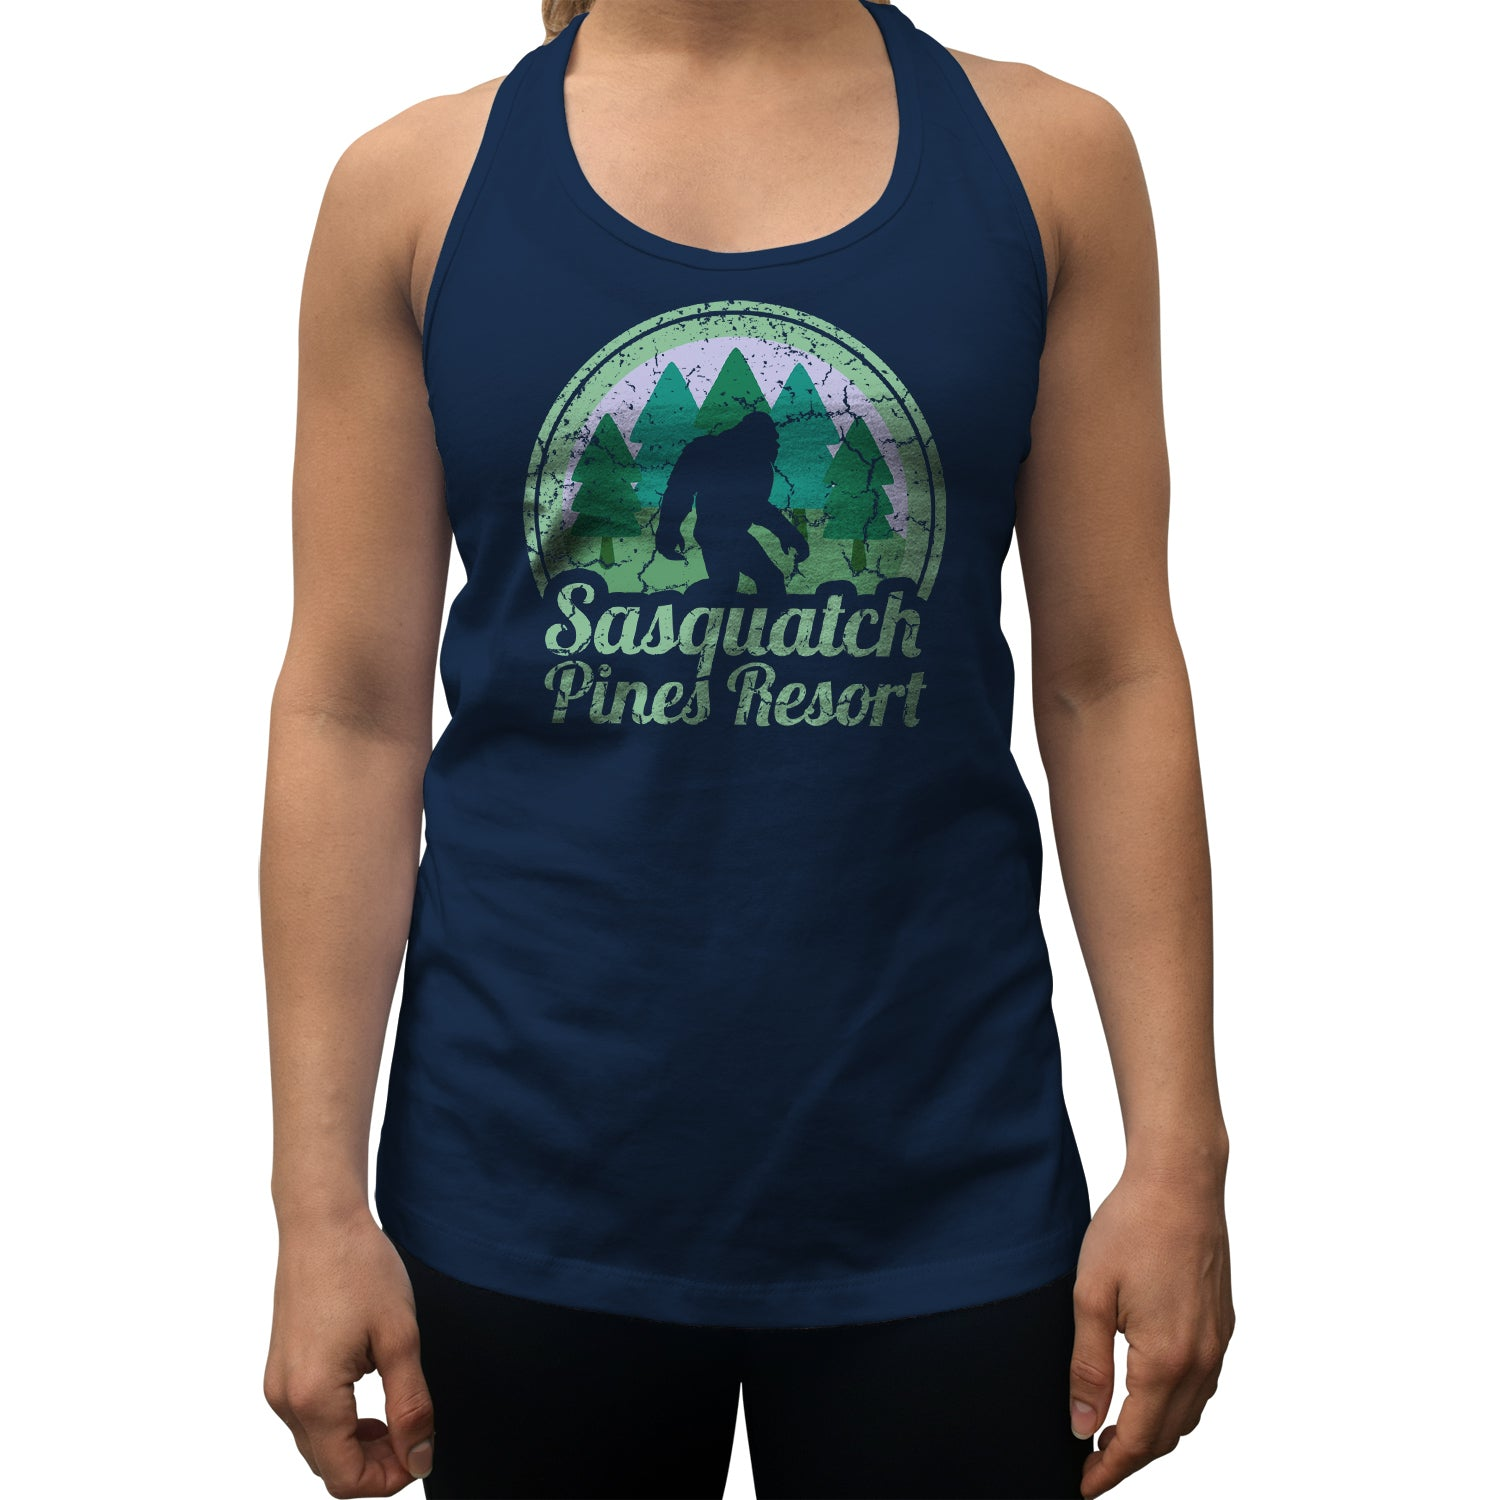 Women's Sasquatch Pines Resort Racerback Tank Top